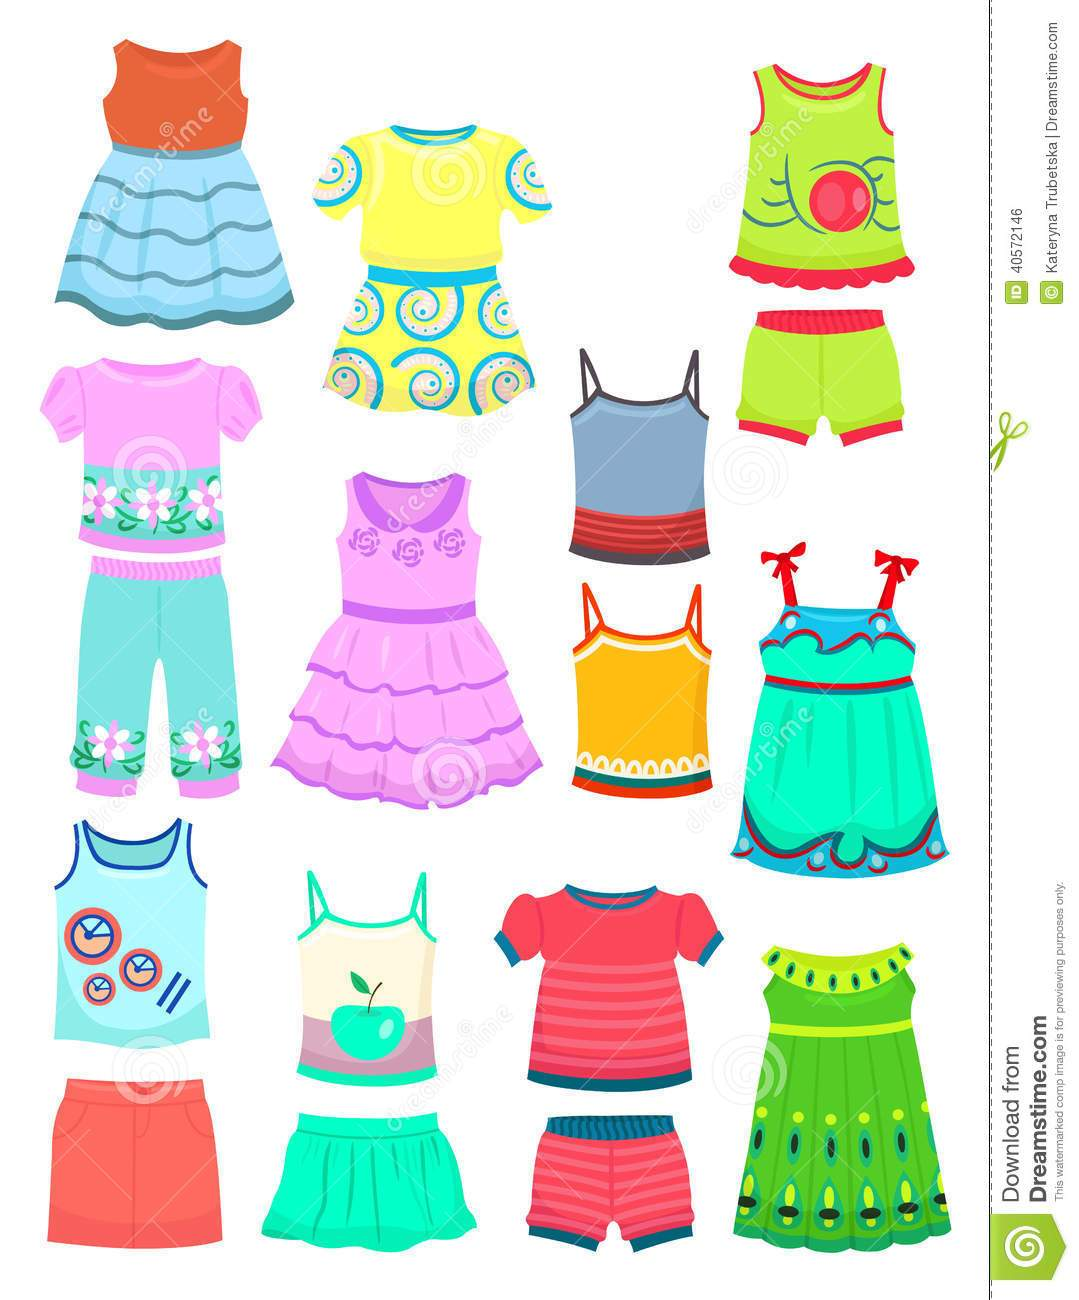 Summer clothes clipart free 6 » Clipart Portal.